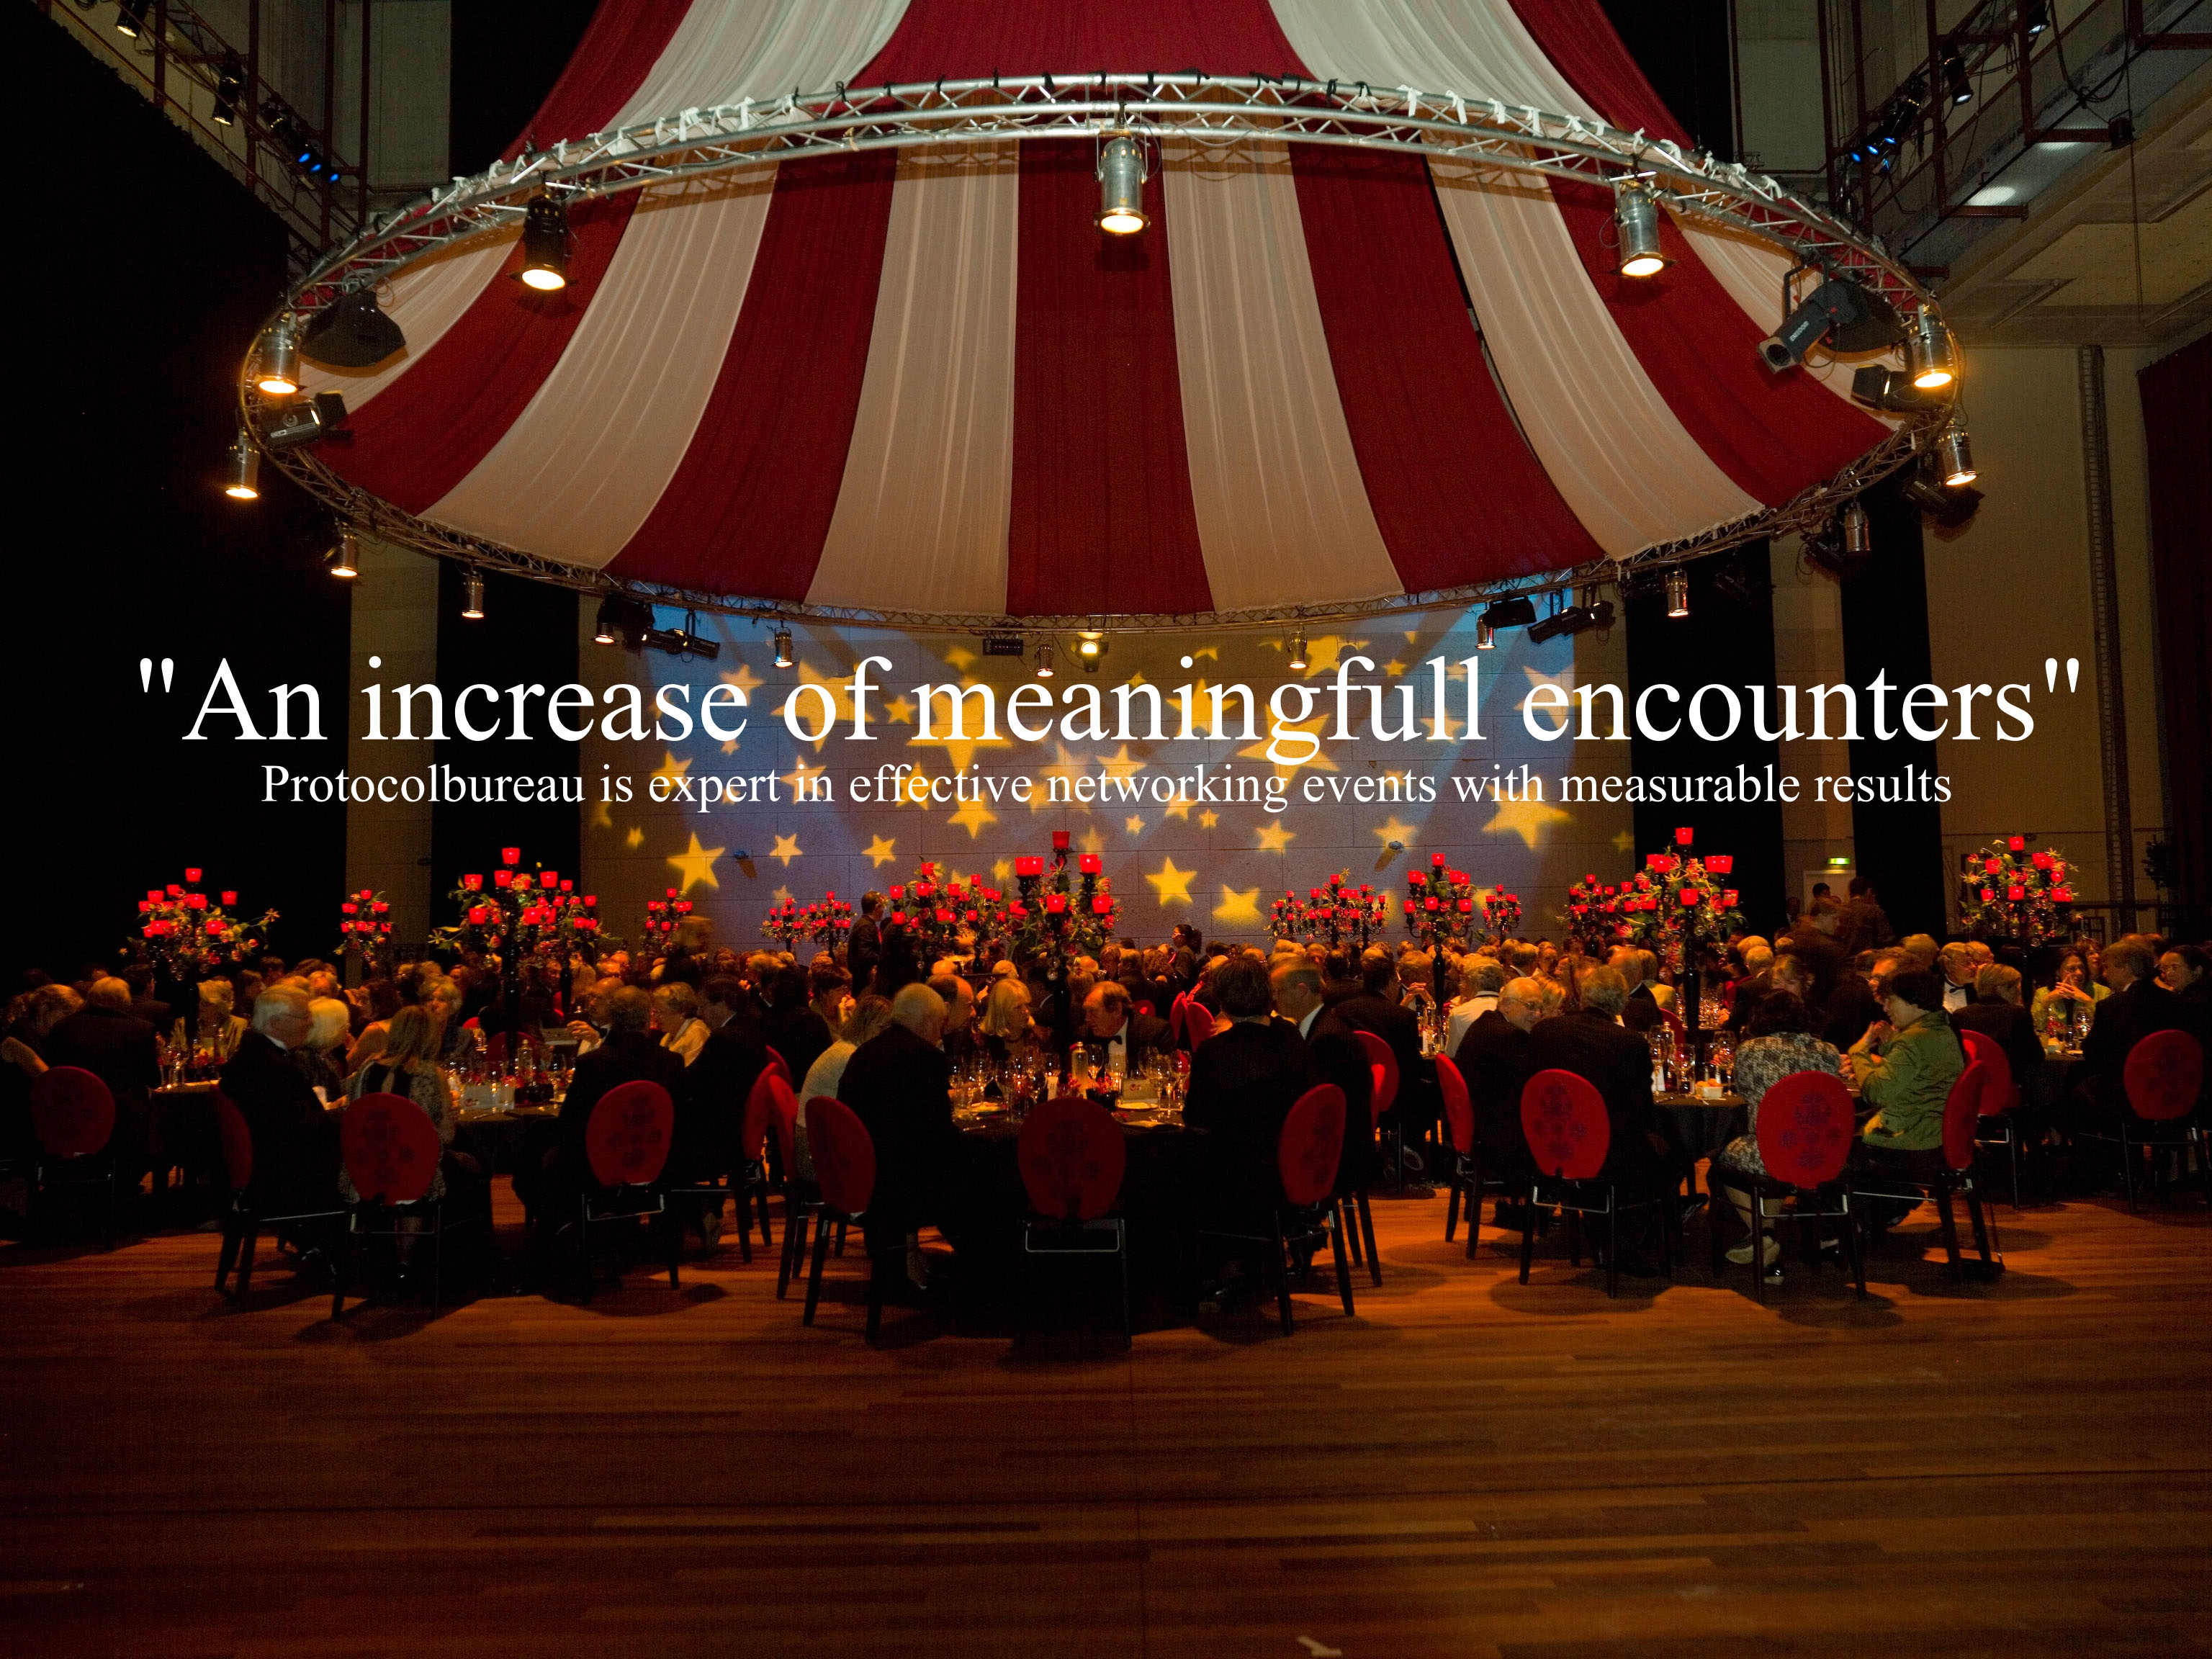 Effective networking events with measurable results